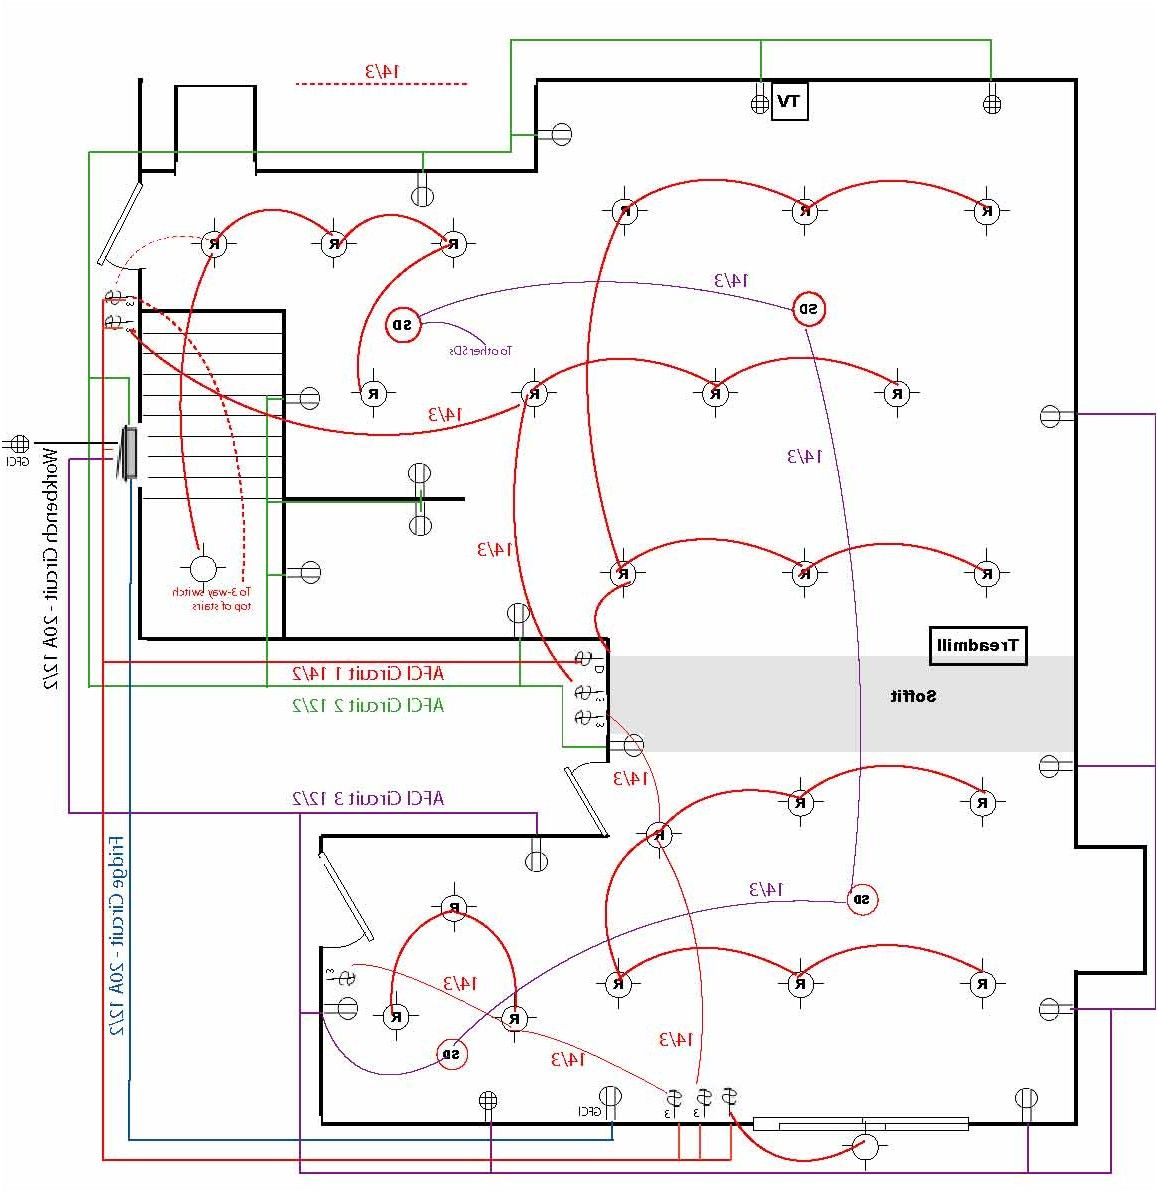 basement wiring diagram review for how to wire a diagram from Basement  Electrical Wiring Diagram Basement